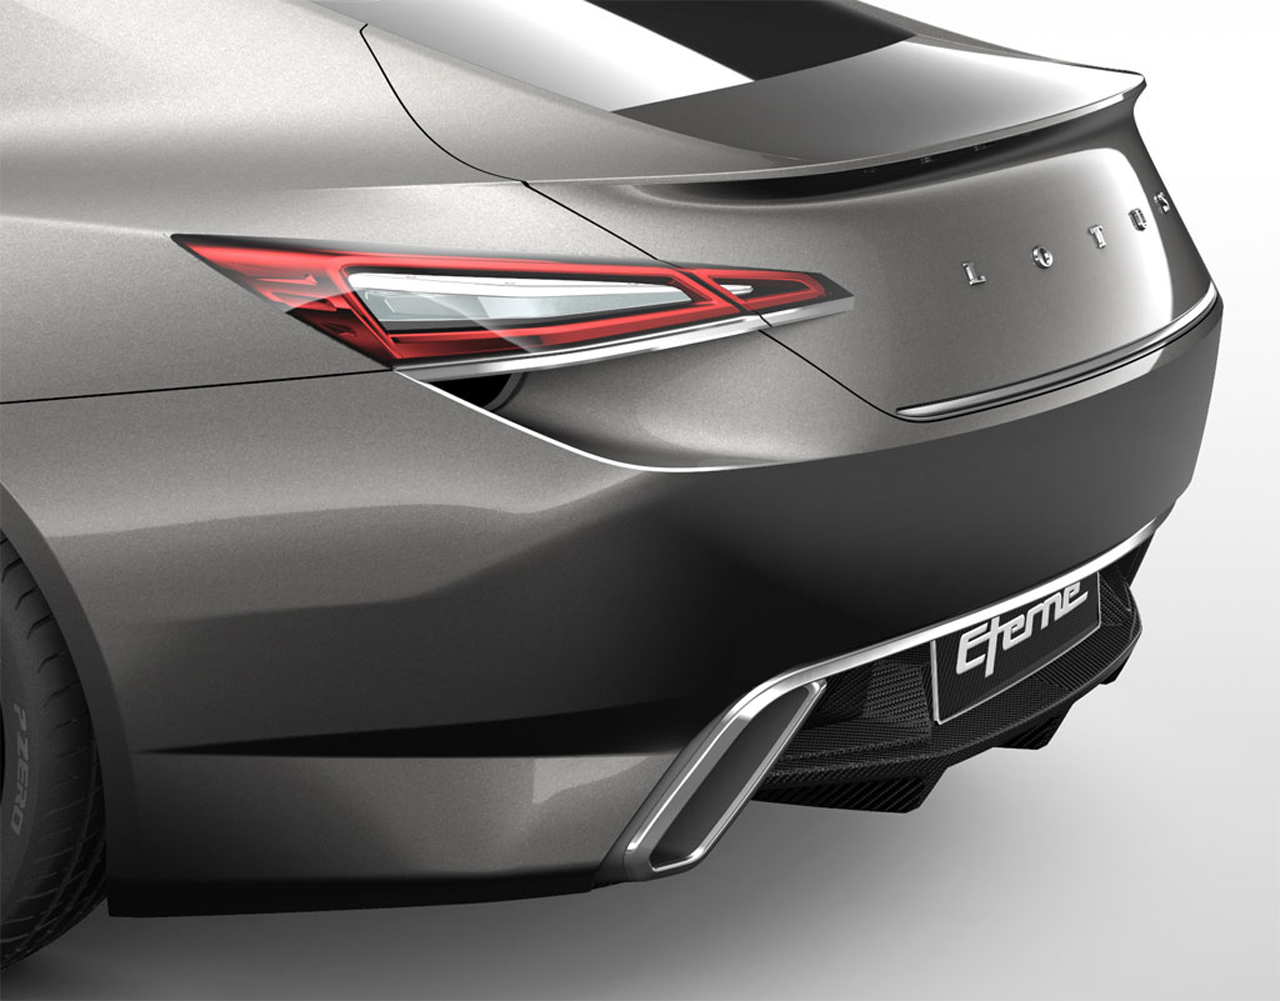 The rear view of 2015 Lotus Eterne 1